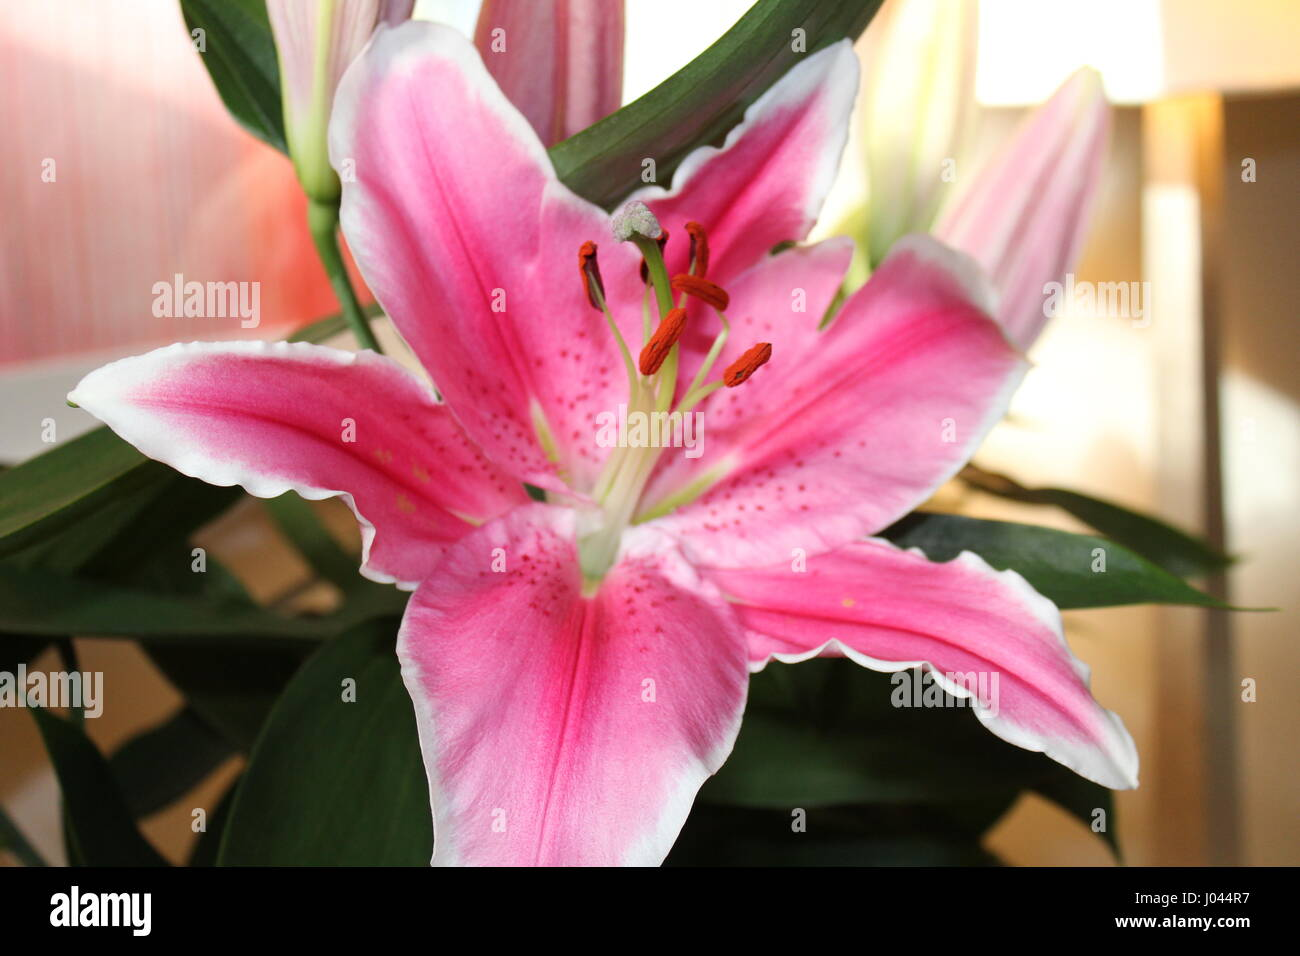 Flower White Pink Lily Bud Leaves Stock Photos Flower White Pink